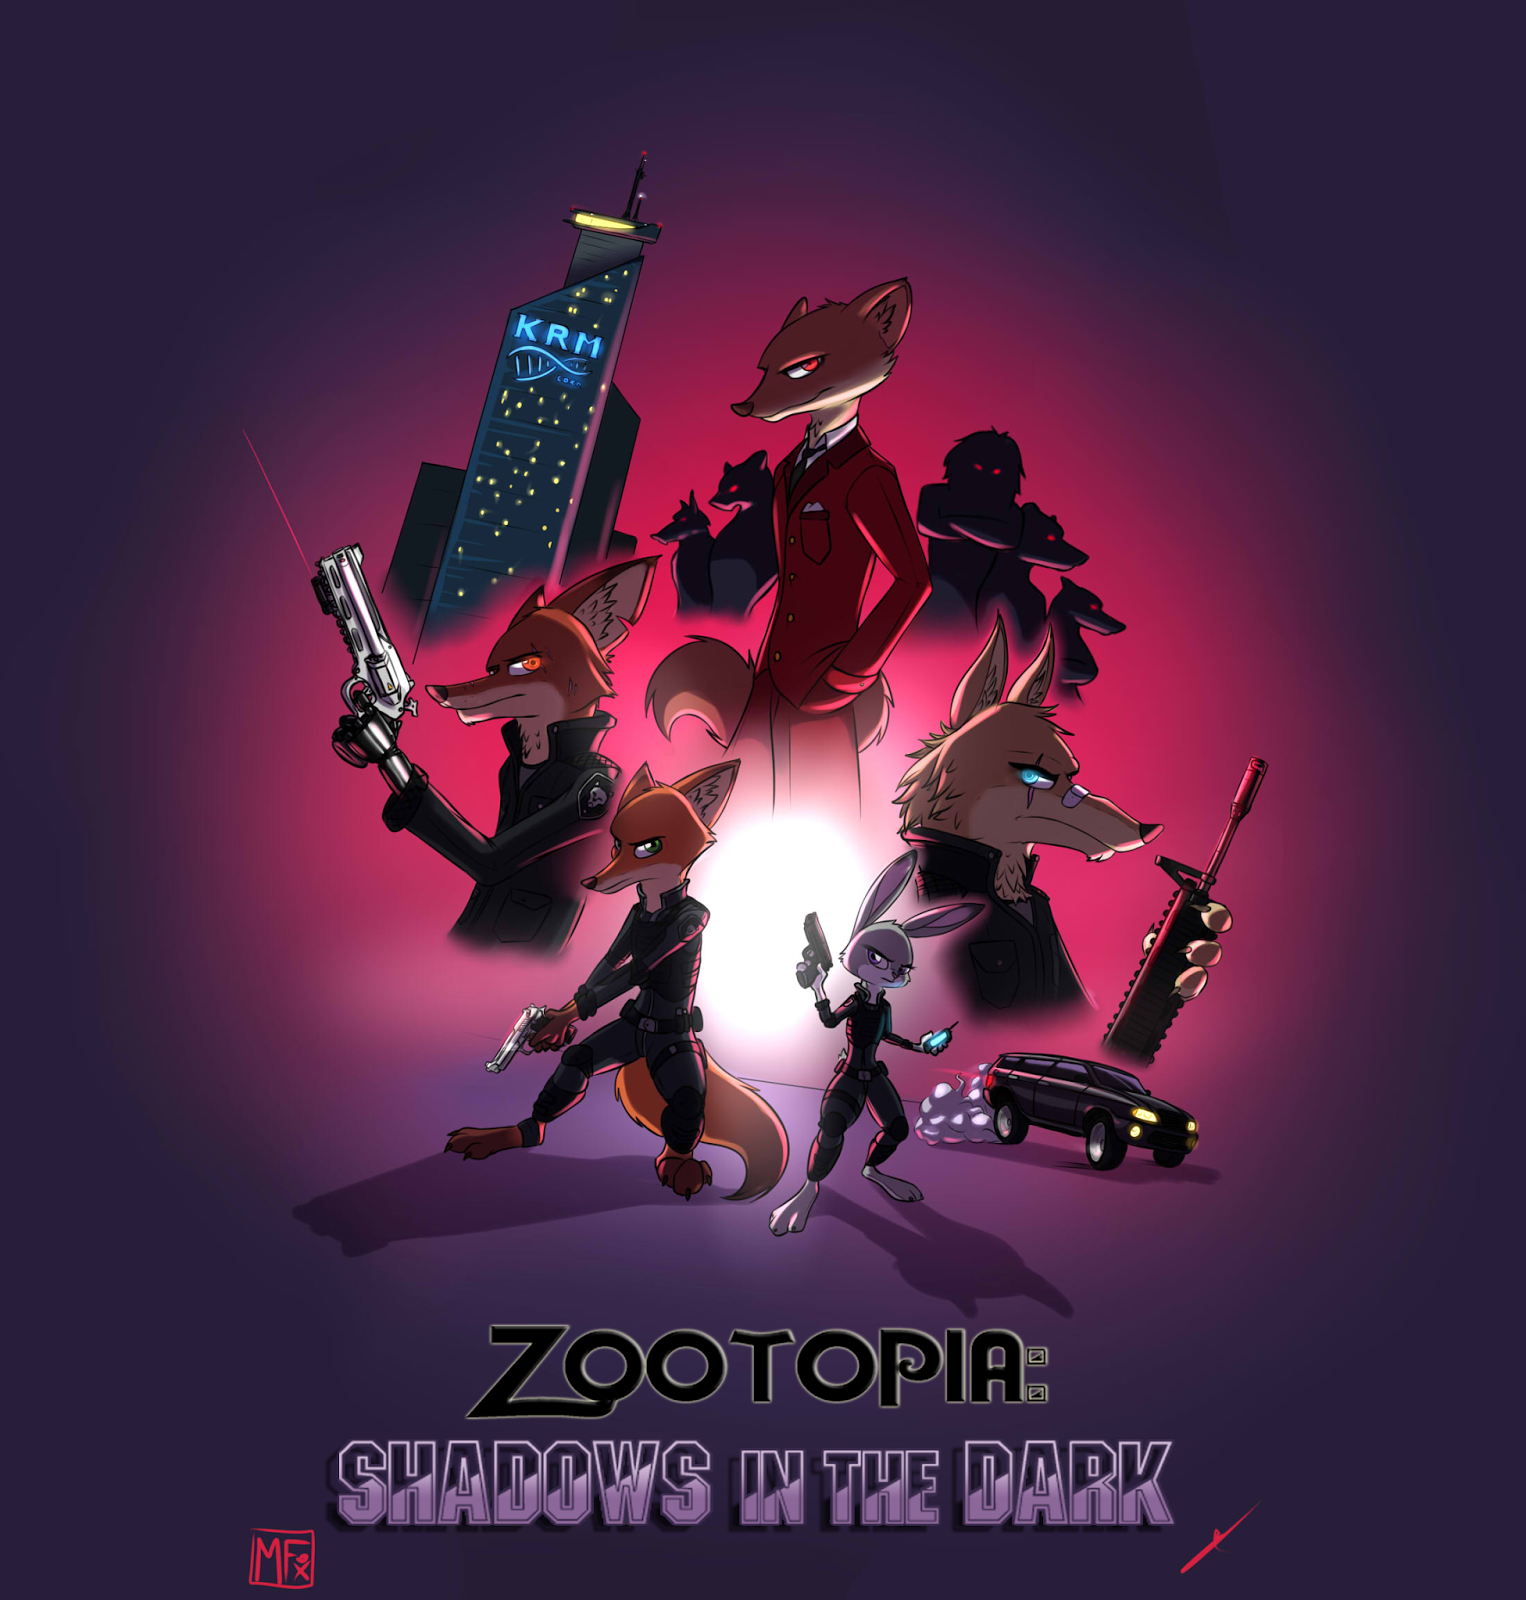 Zootopia Fanfic: Story- Zootopia: Shadows In The Dark